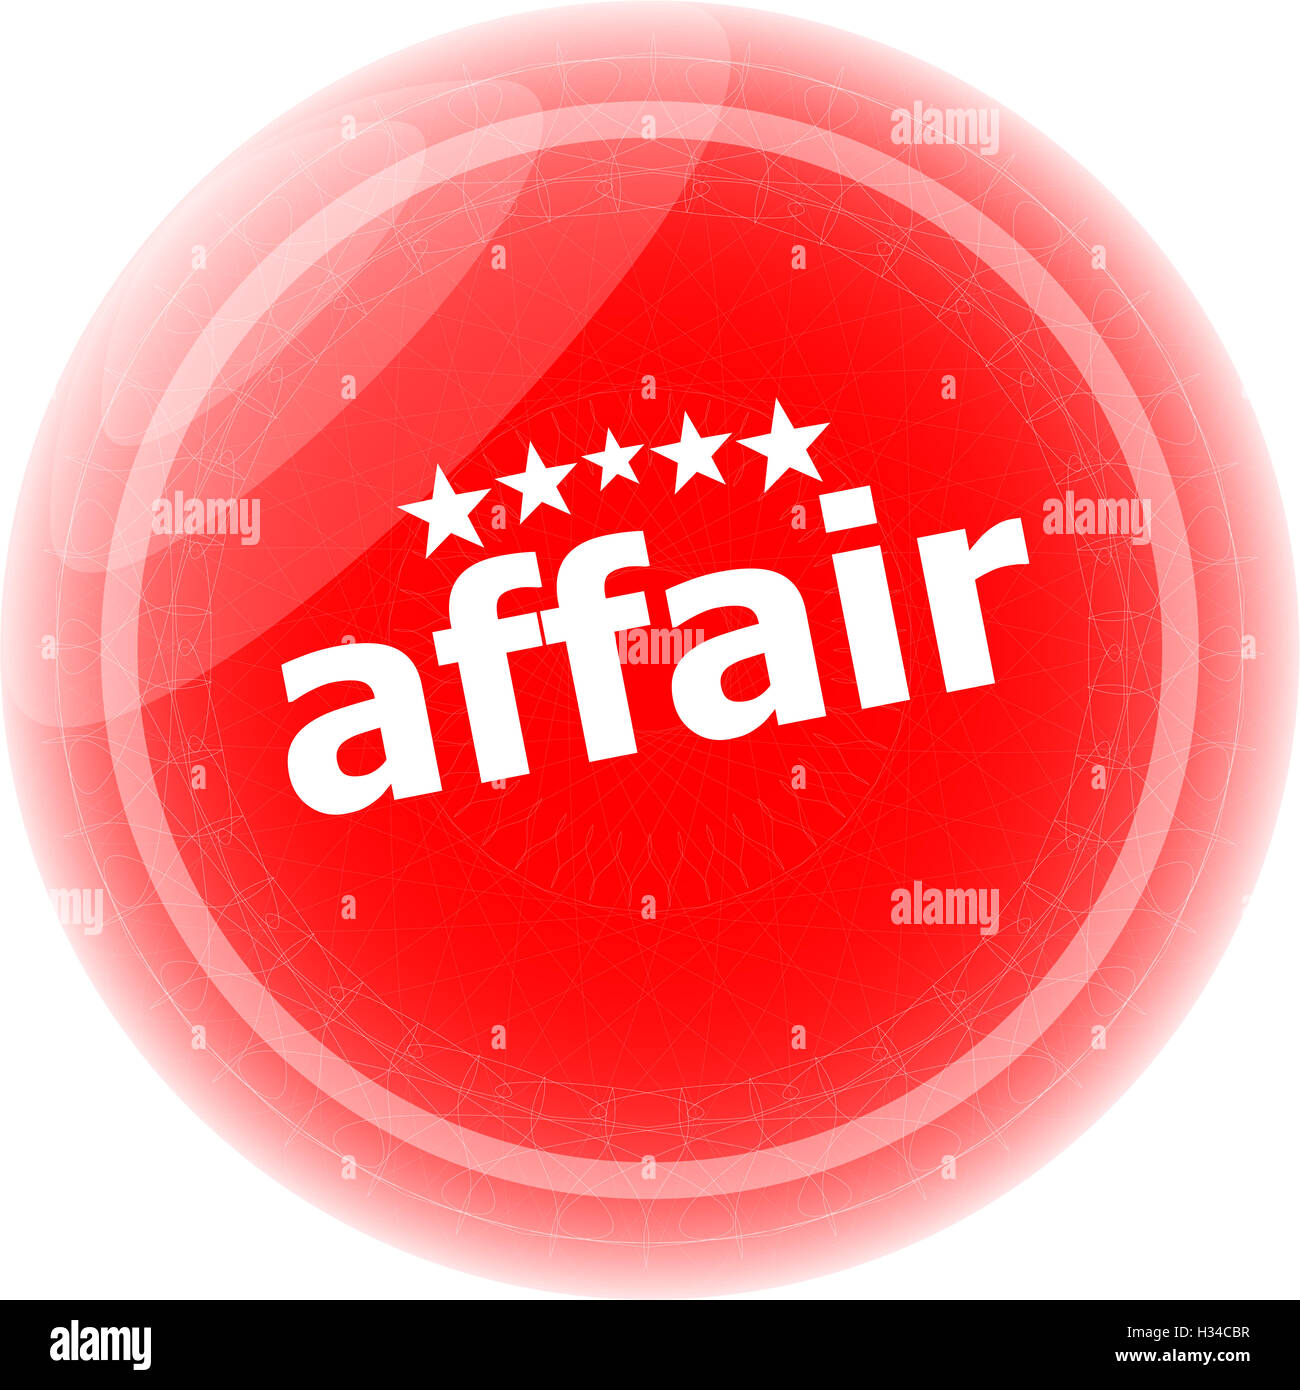 affair word red stickers, icon button, business concept - Stock Image